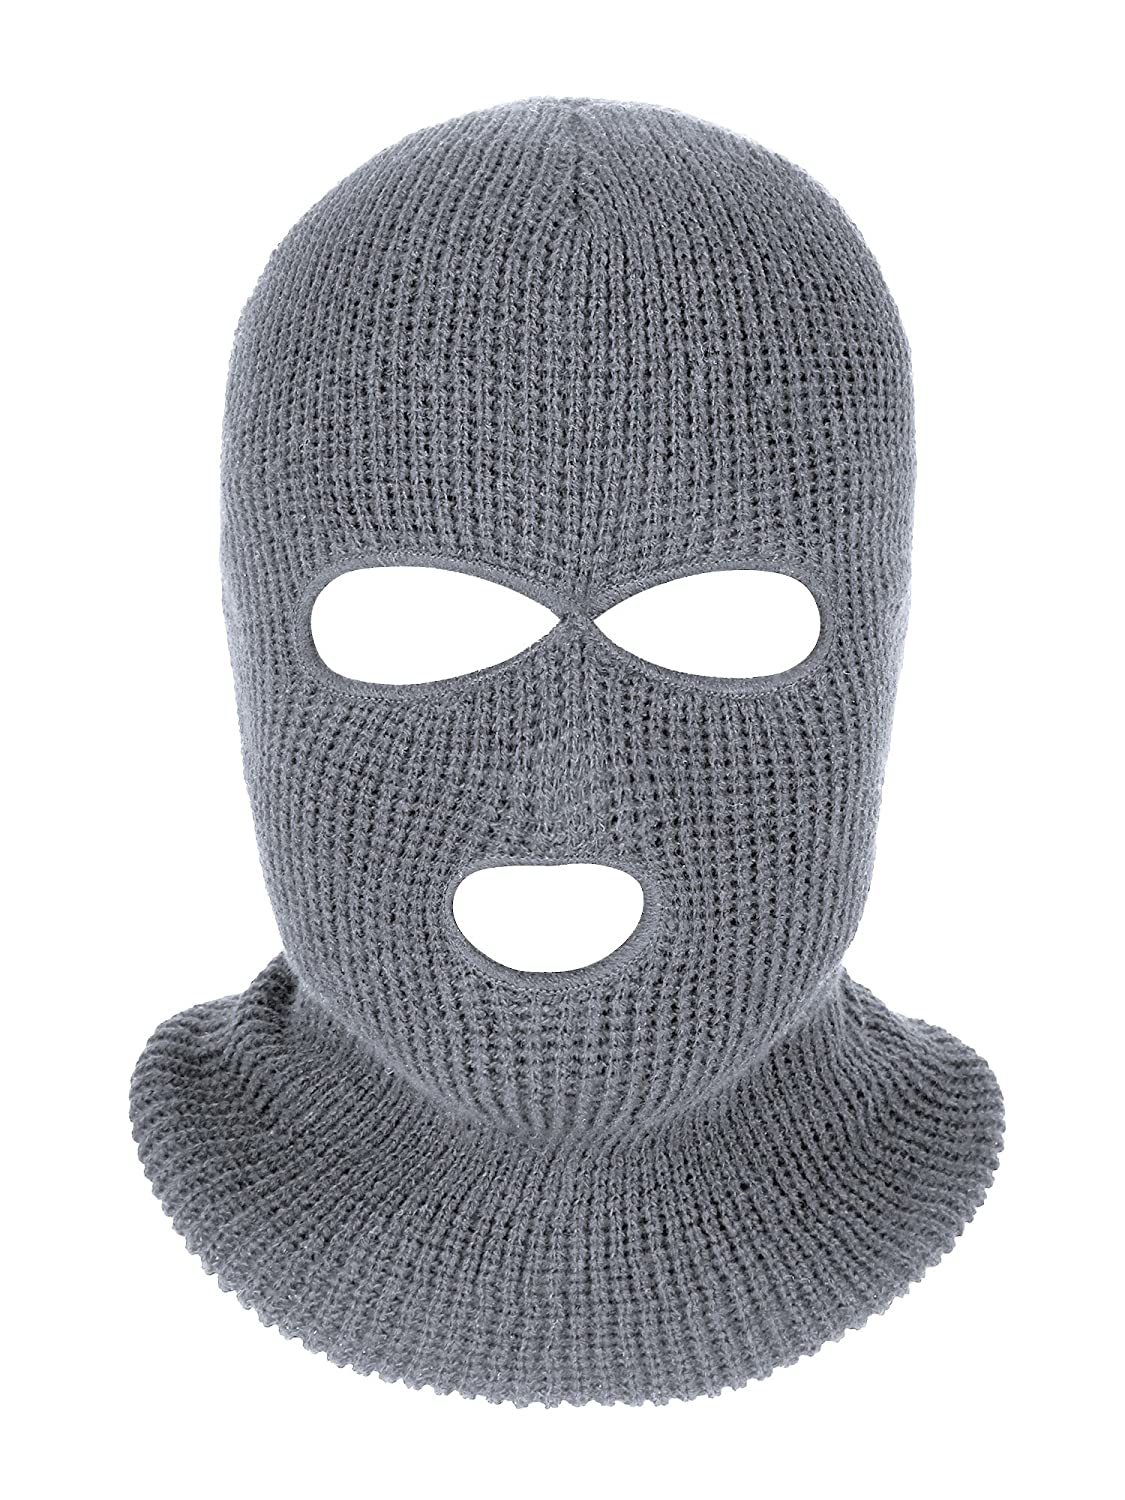 Satinior 3 Hole Knitted Full Face Cover Ski Mask Adult Winter Balaclava Warm Knit Full Face Mask for Outdoor Sports